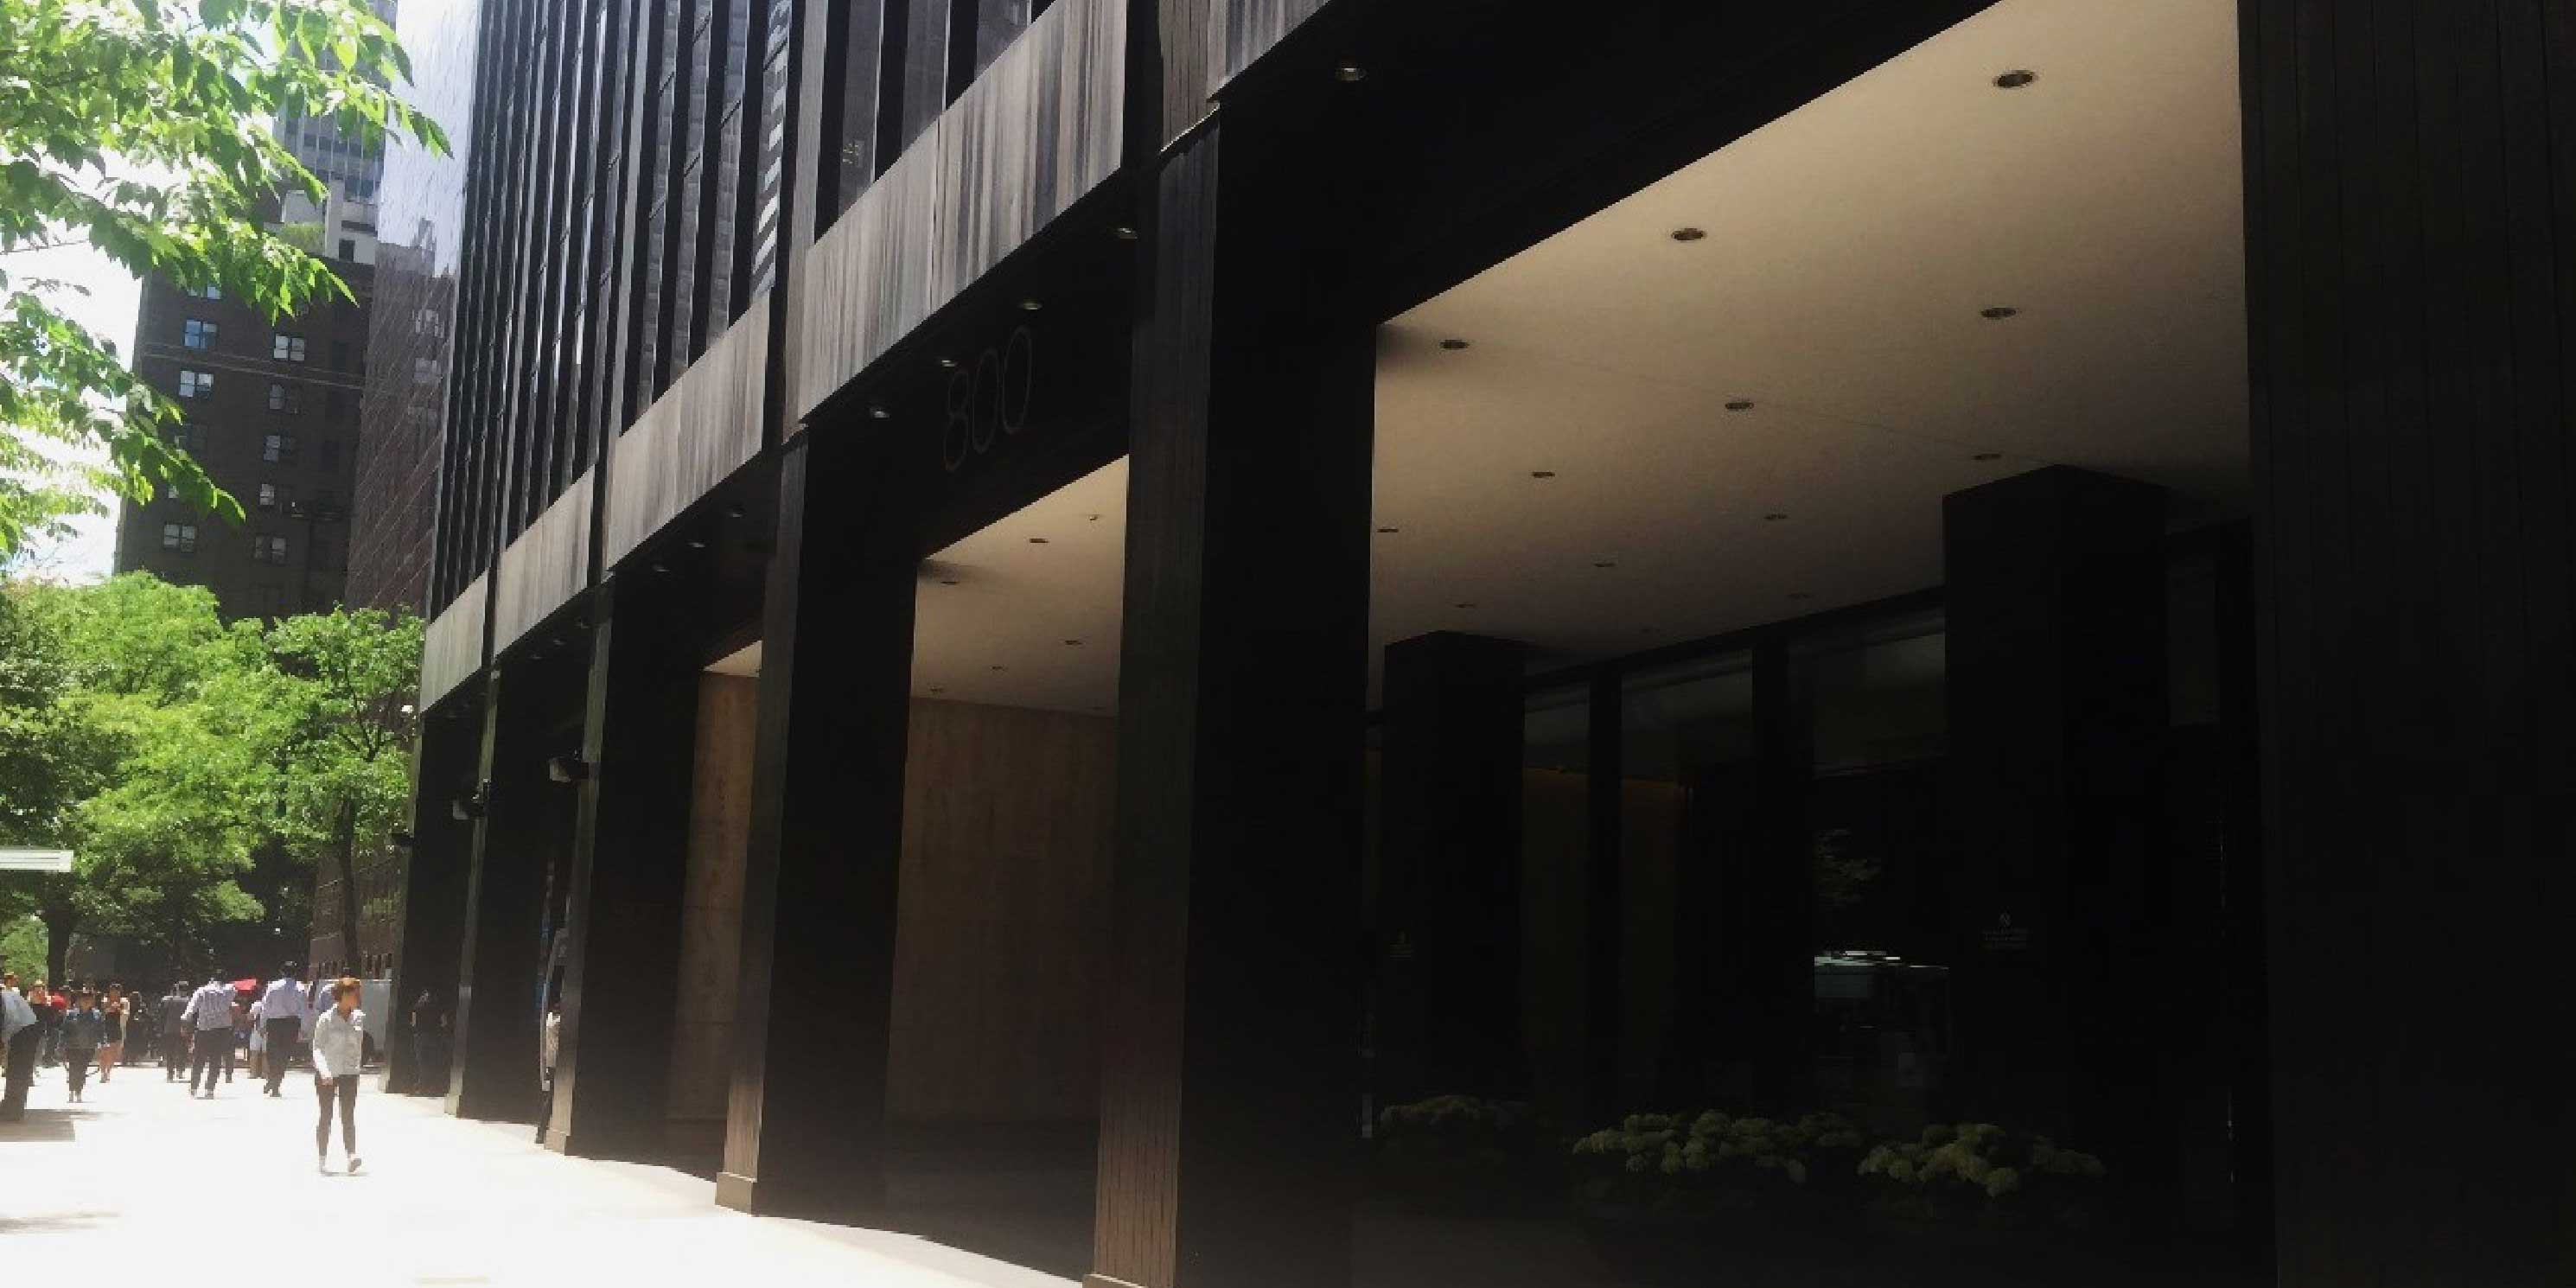 the public space outside 800 Third Avenue